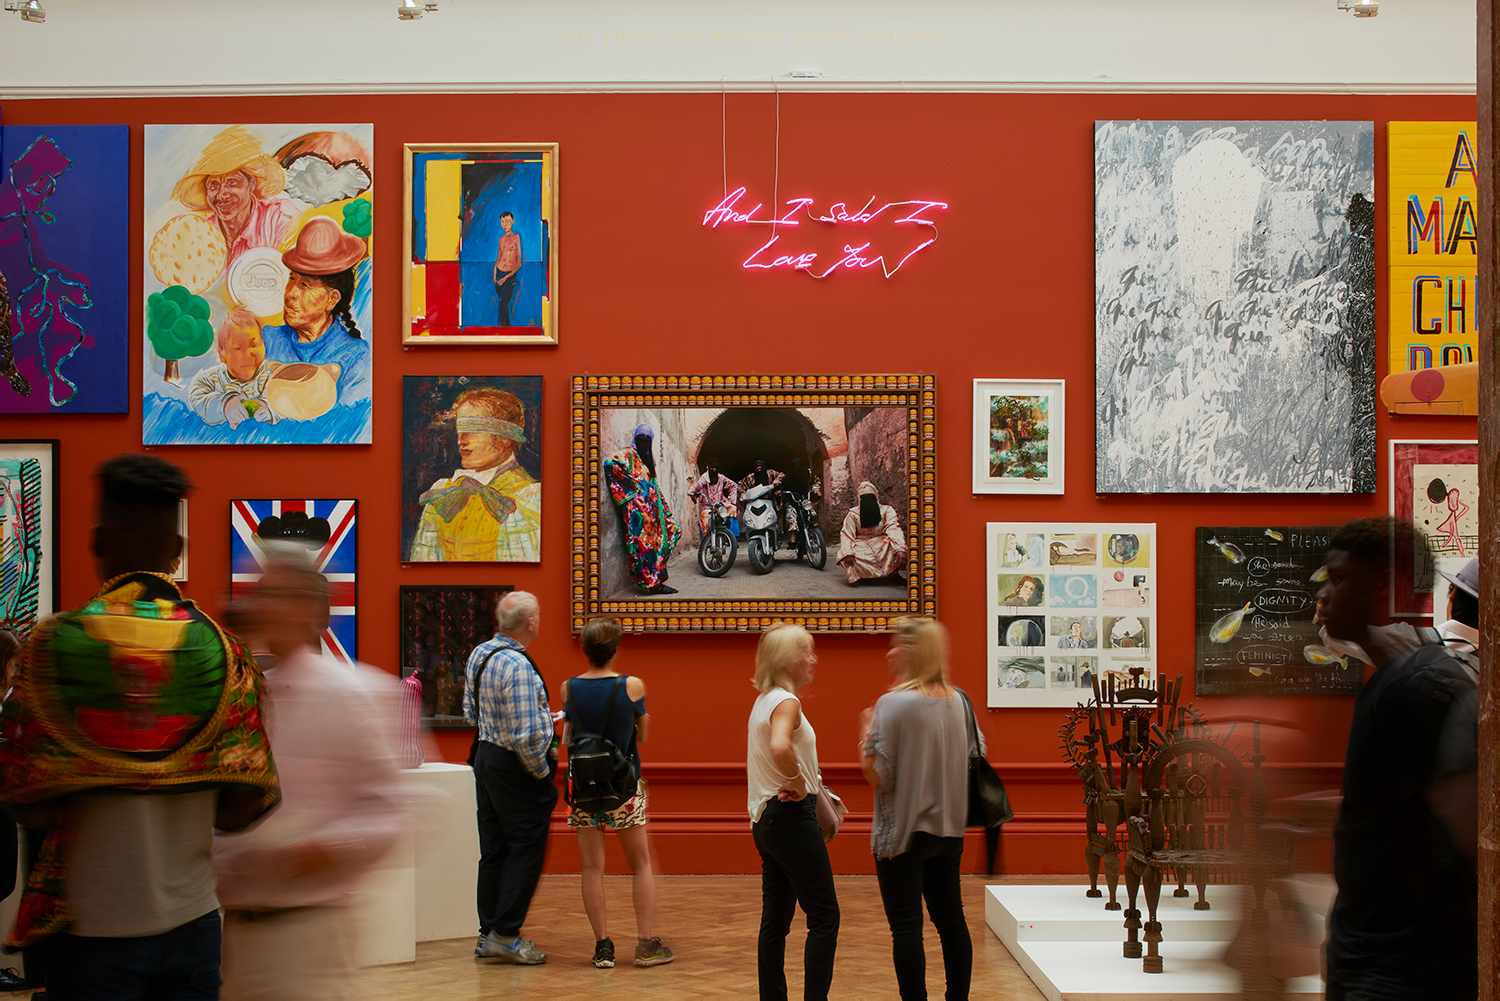 Installation view of the 2017 Summer Exhibition, 13 June – 20 August at the Royal Academy of Arts, London  Photo © James Harris